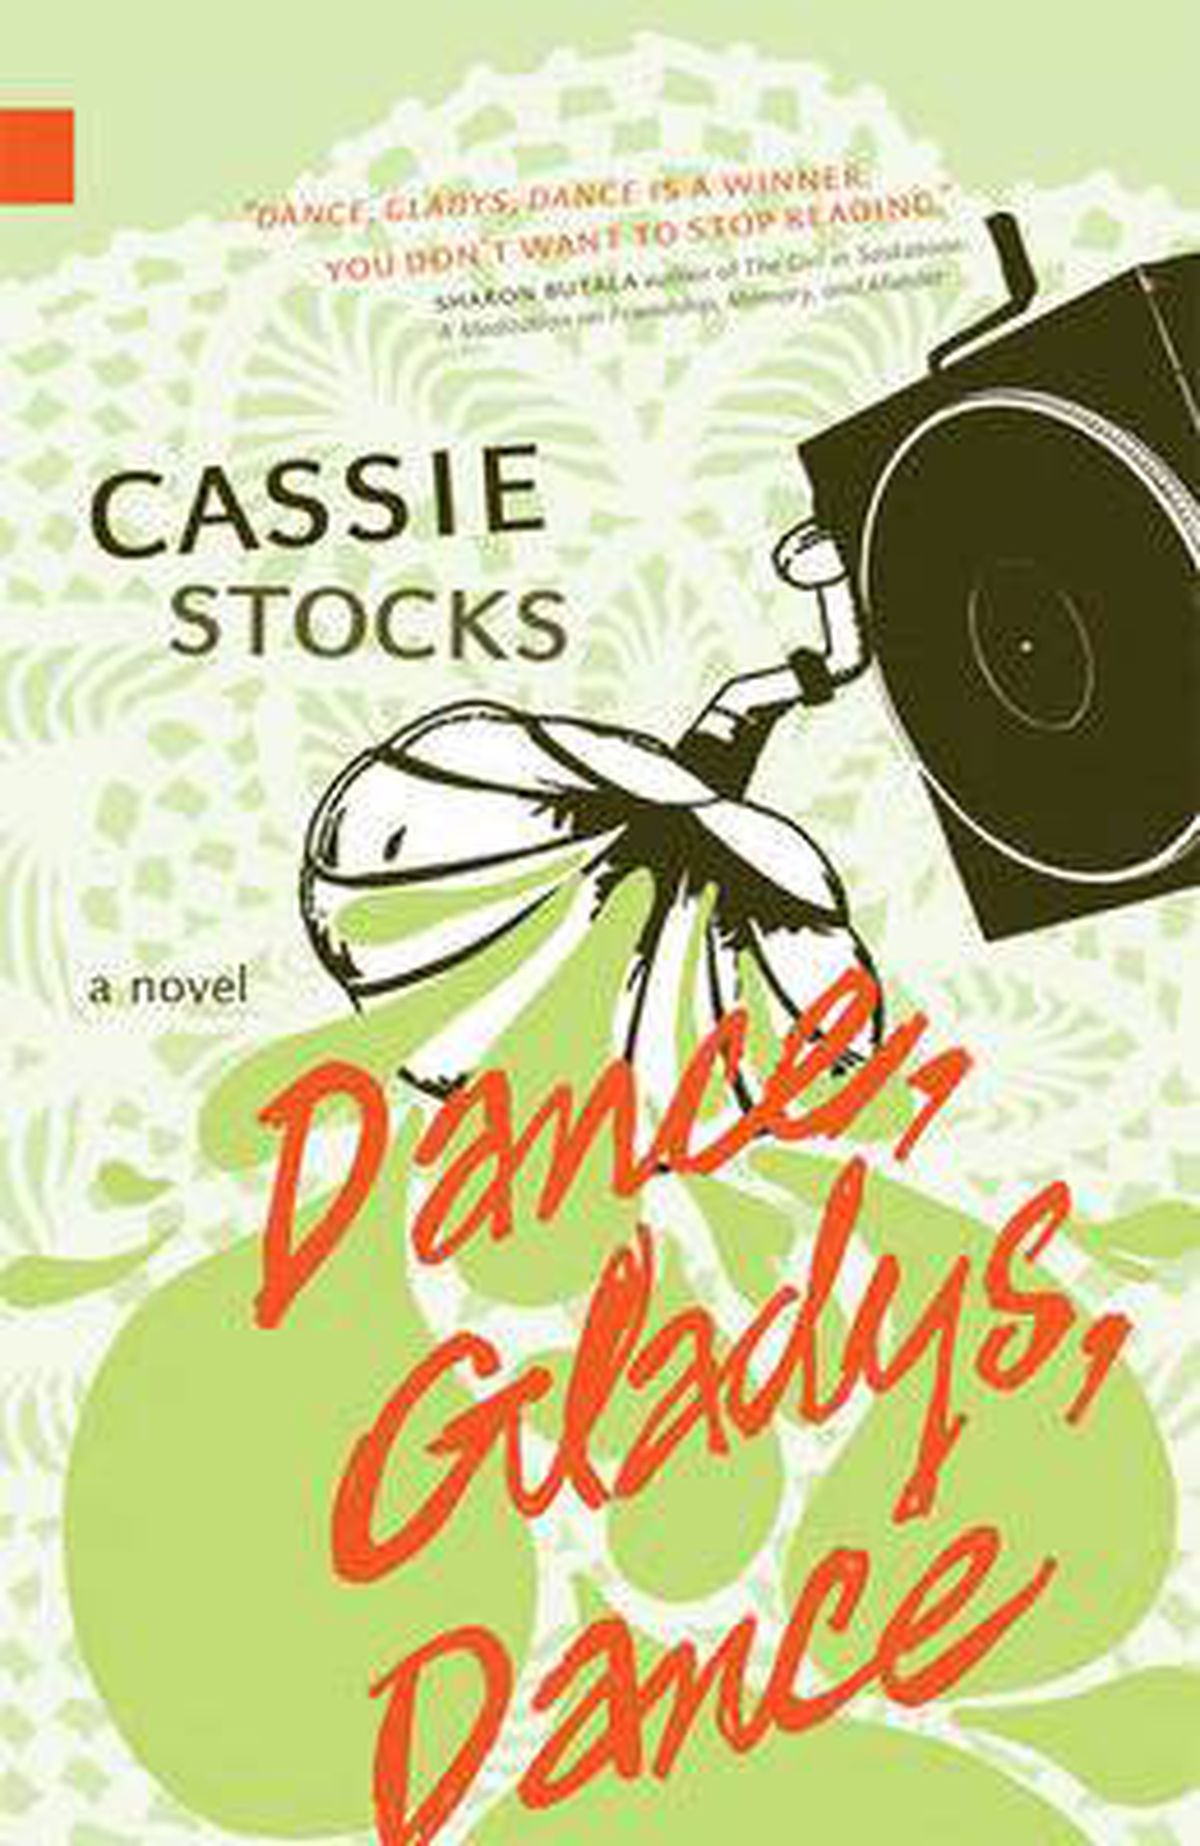 Dance, Gladys, Dance, by Cassie Stocks, NeWest Press, 341 pages, $19.95